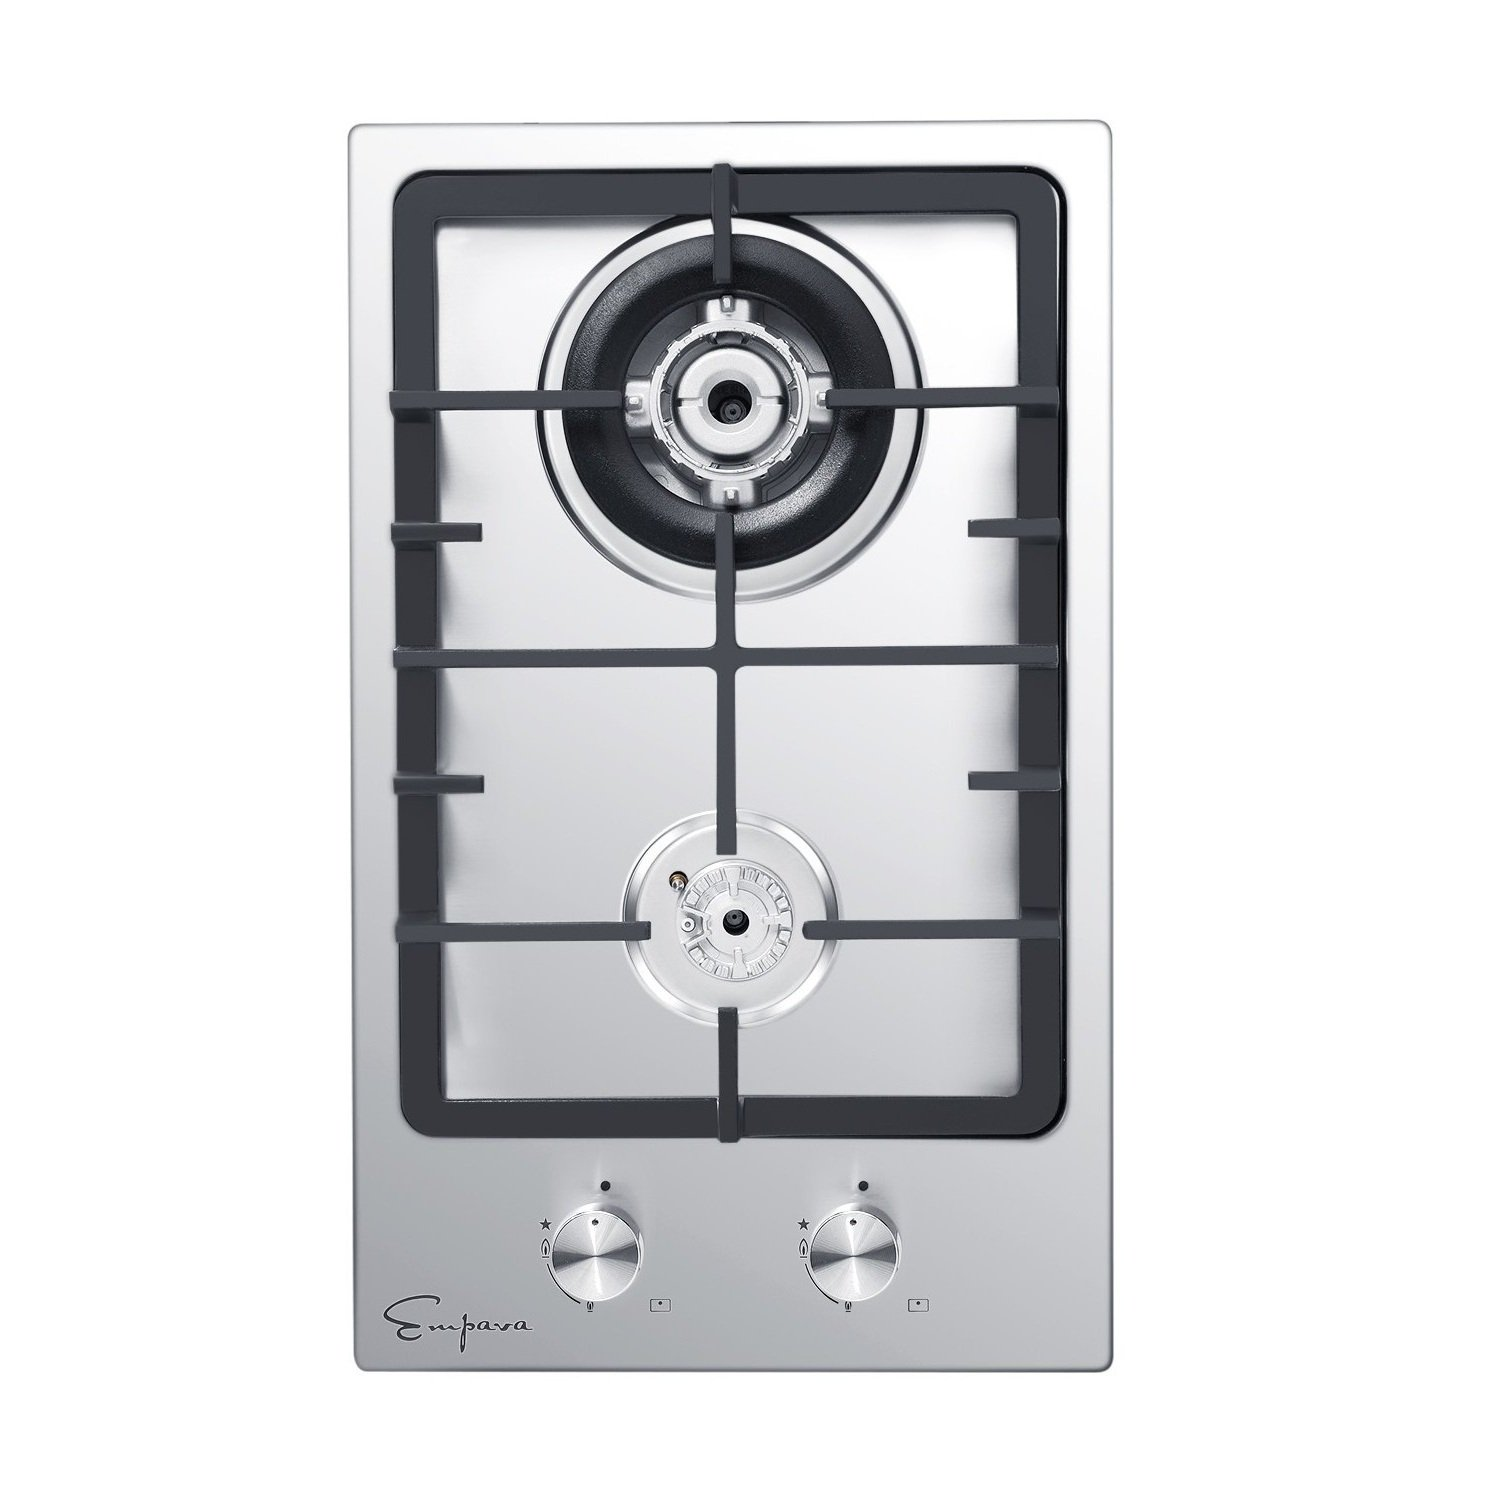 Empava 12'' Stainless Steel 2 Italy Sabaf Burners Stove Top Gas Cooktop EMPV-12GC010 by Empava